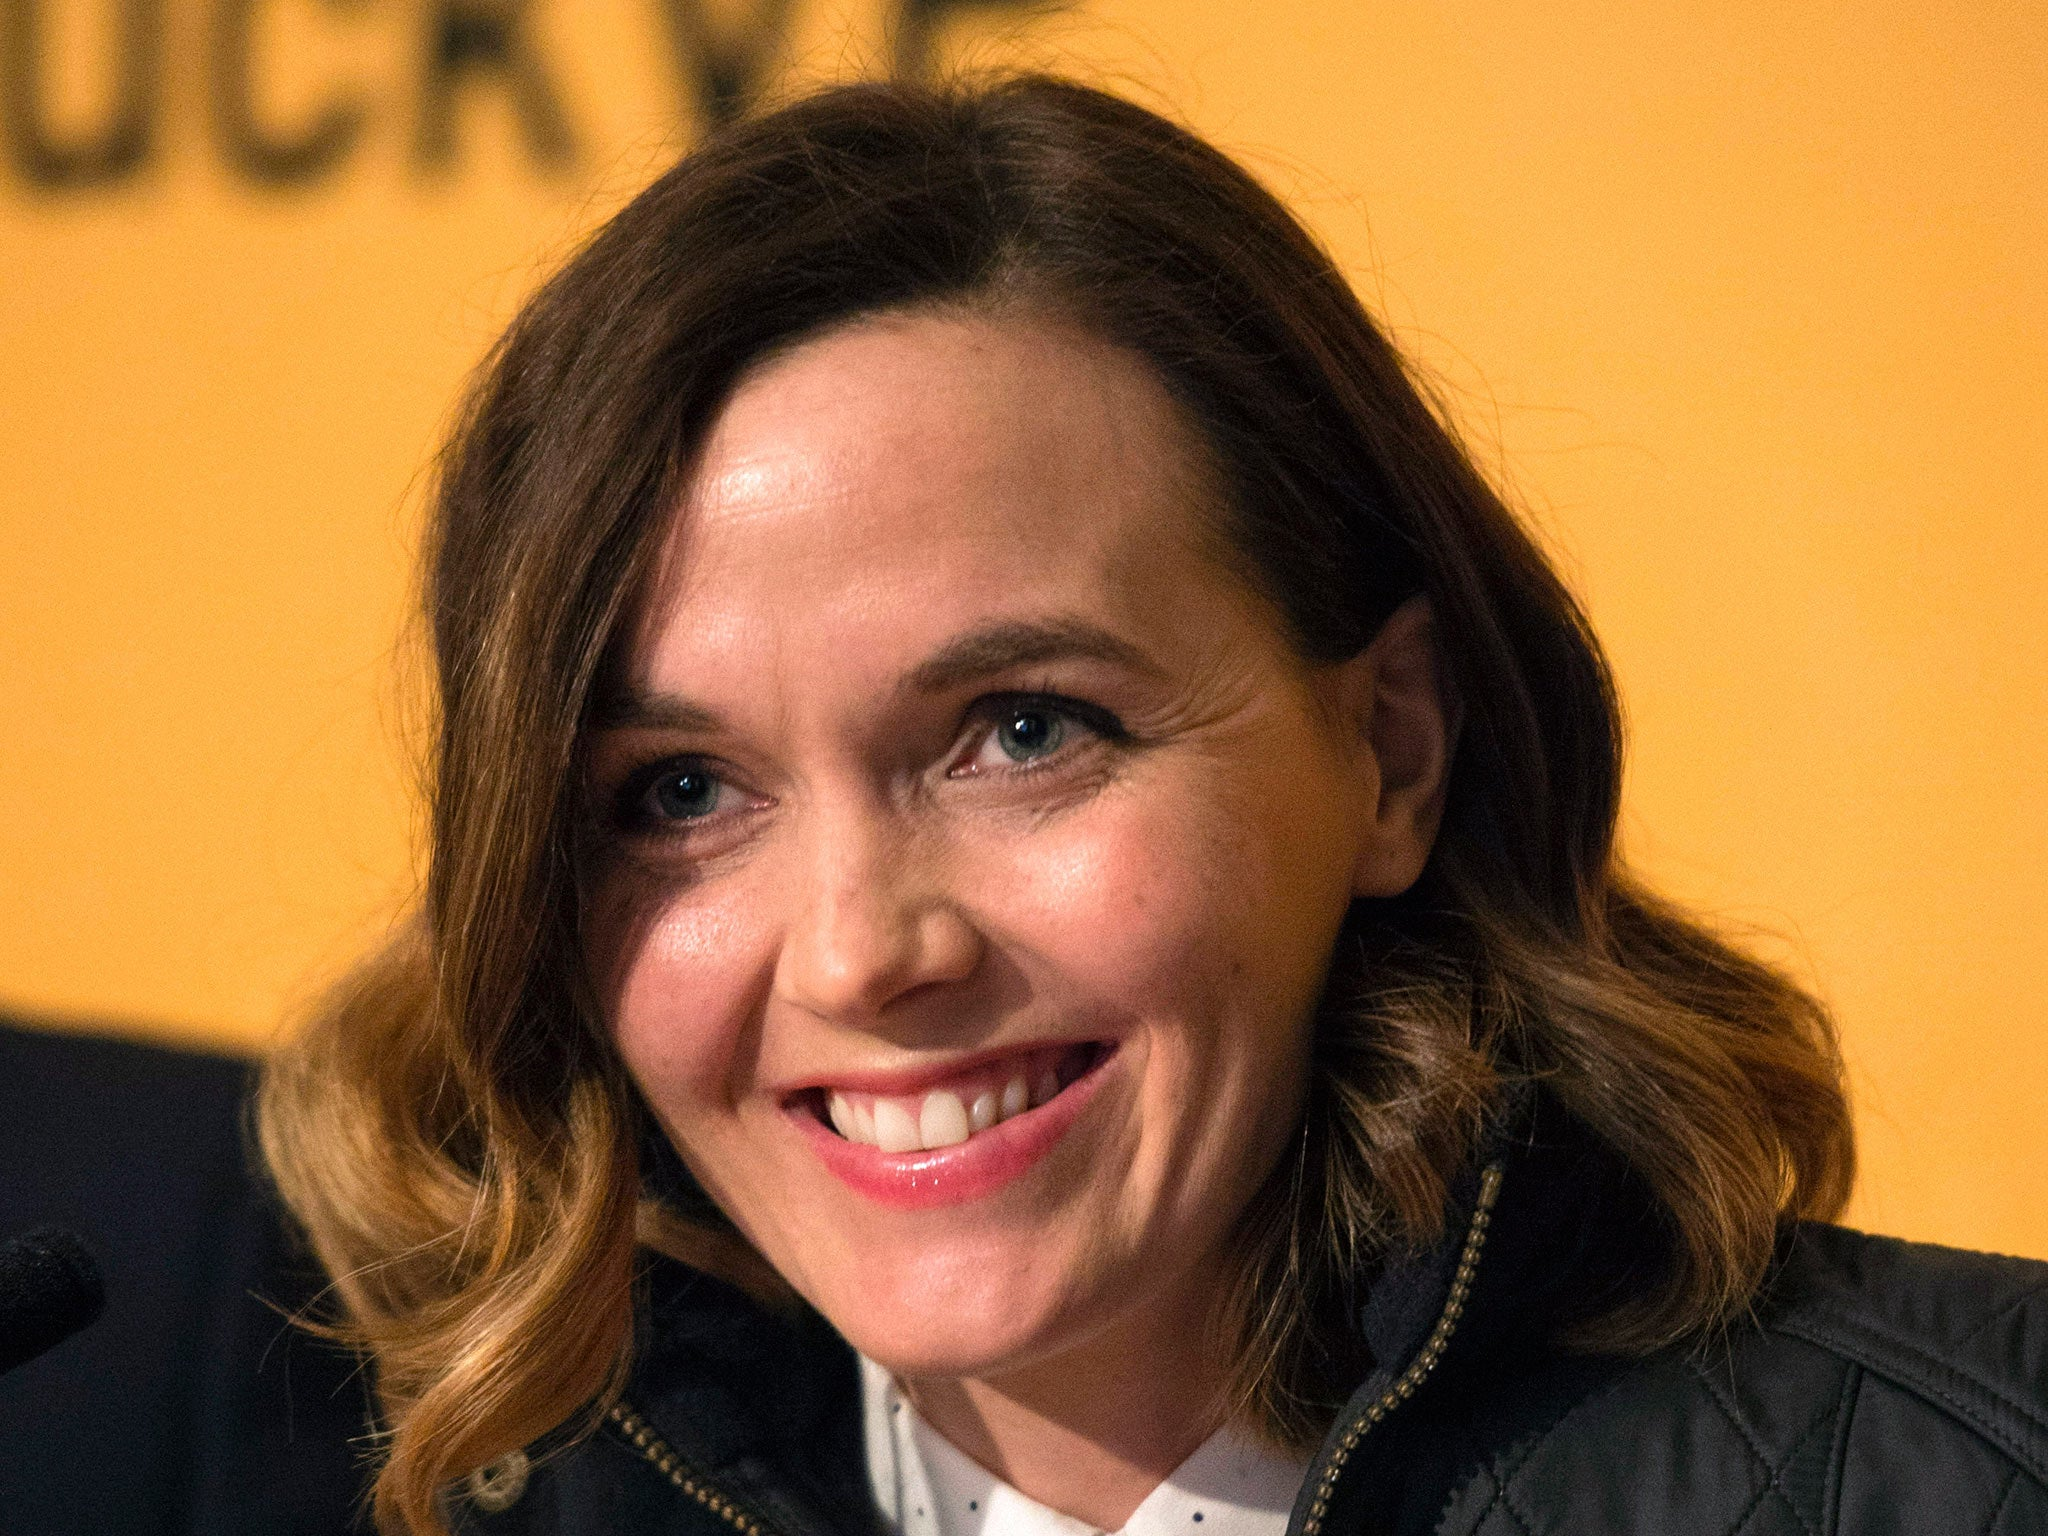 'I don't want to see tomorrow': Cycling champion Victoria Pendleton reveals she planned to take her own life